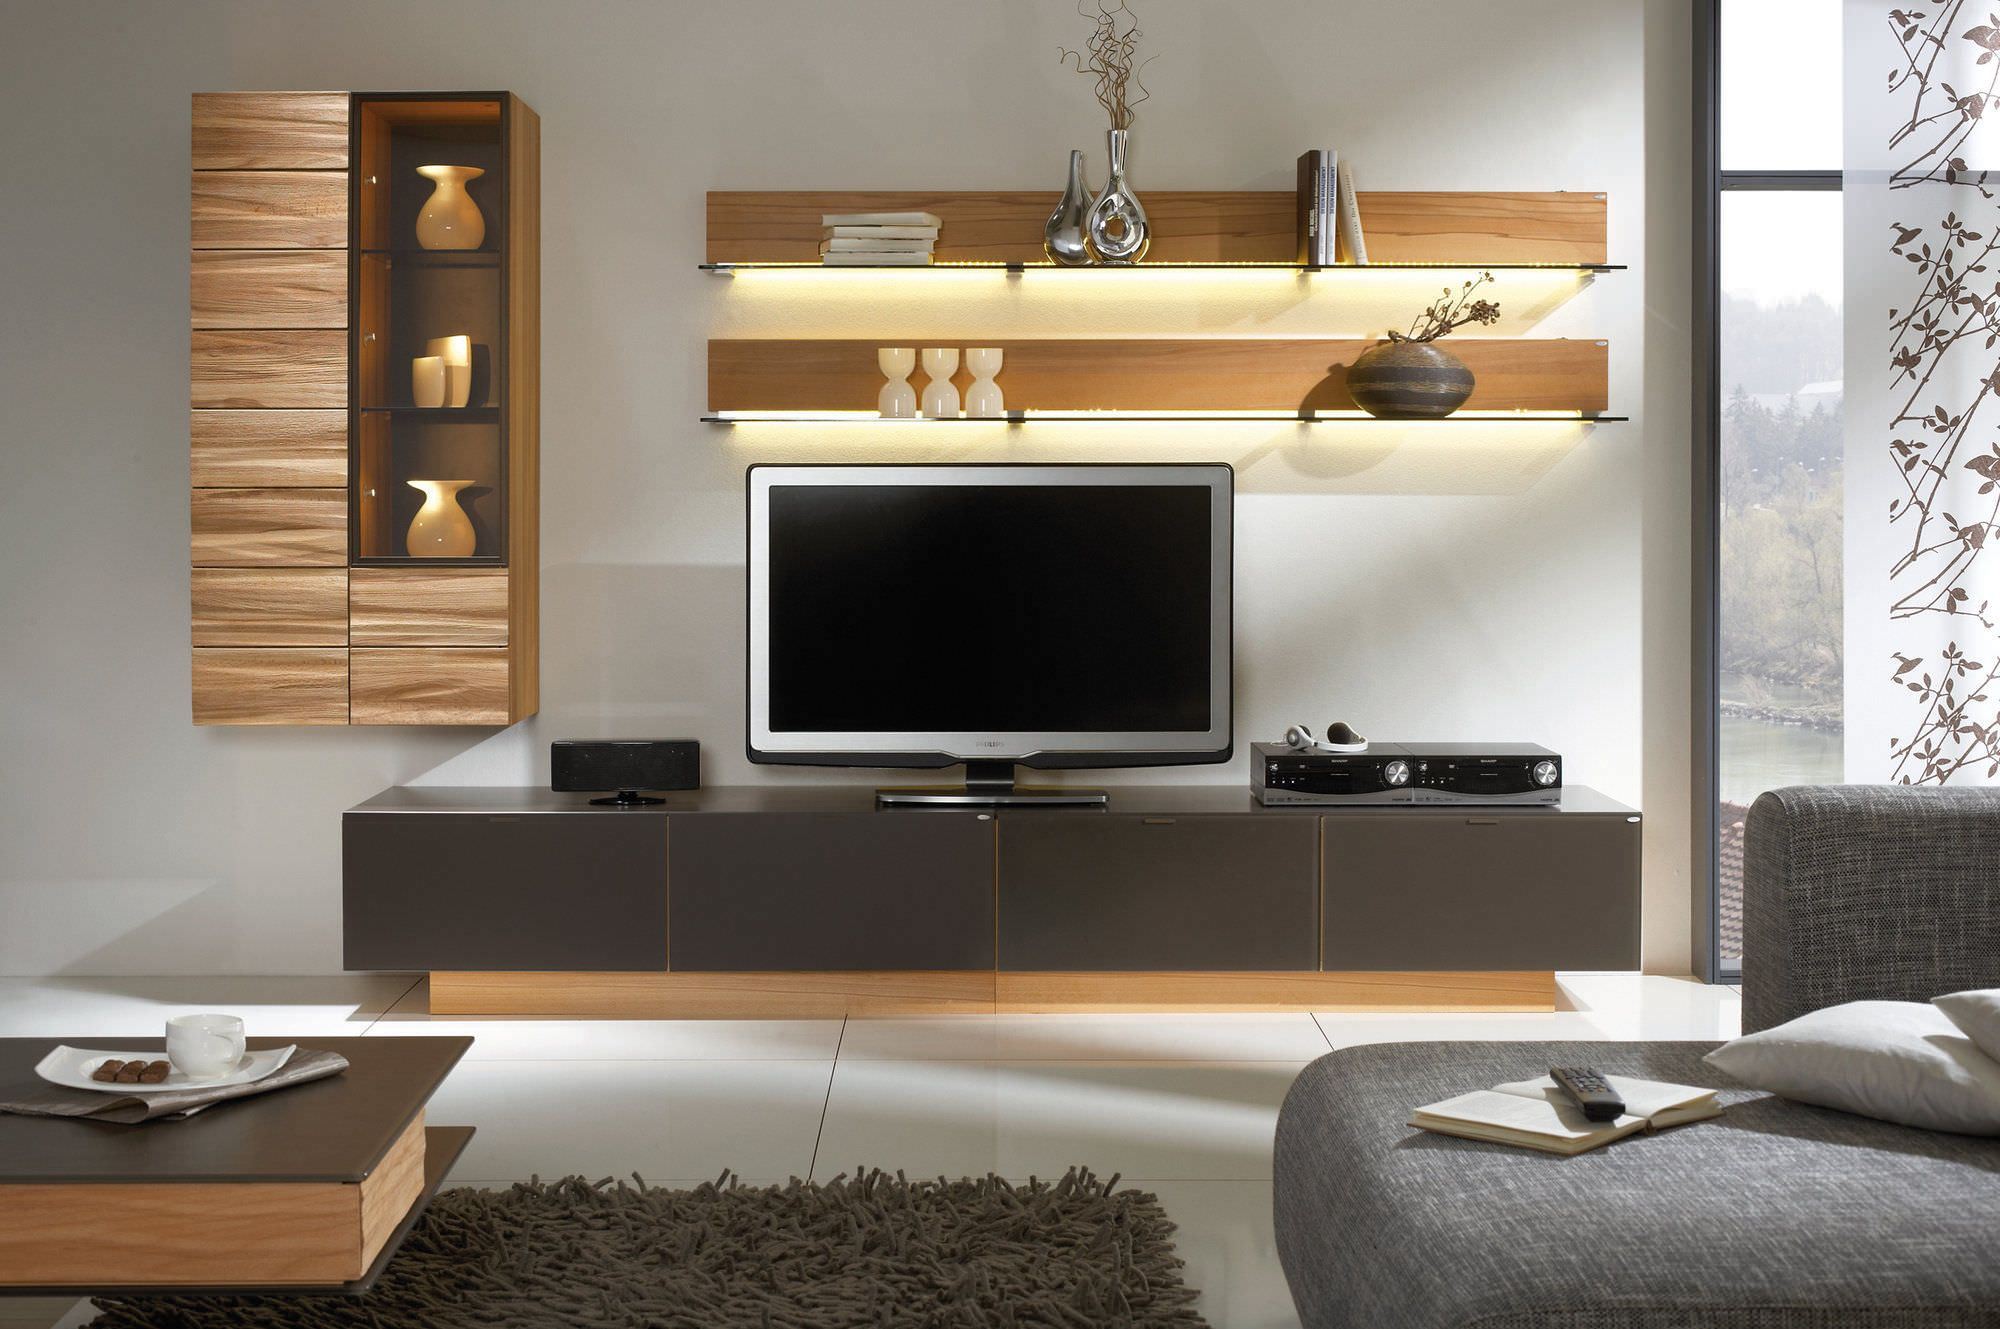 Awesome White Brown Wood Glass Cool Design Contemporary Tv Wall ...